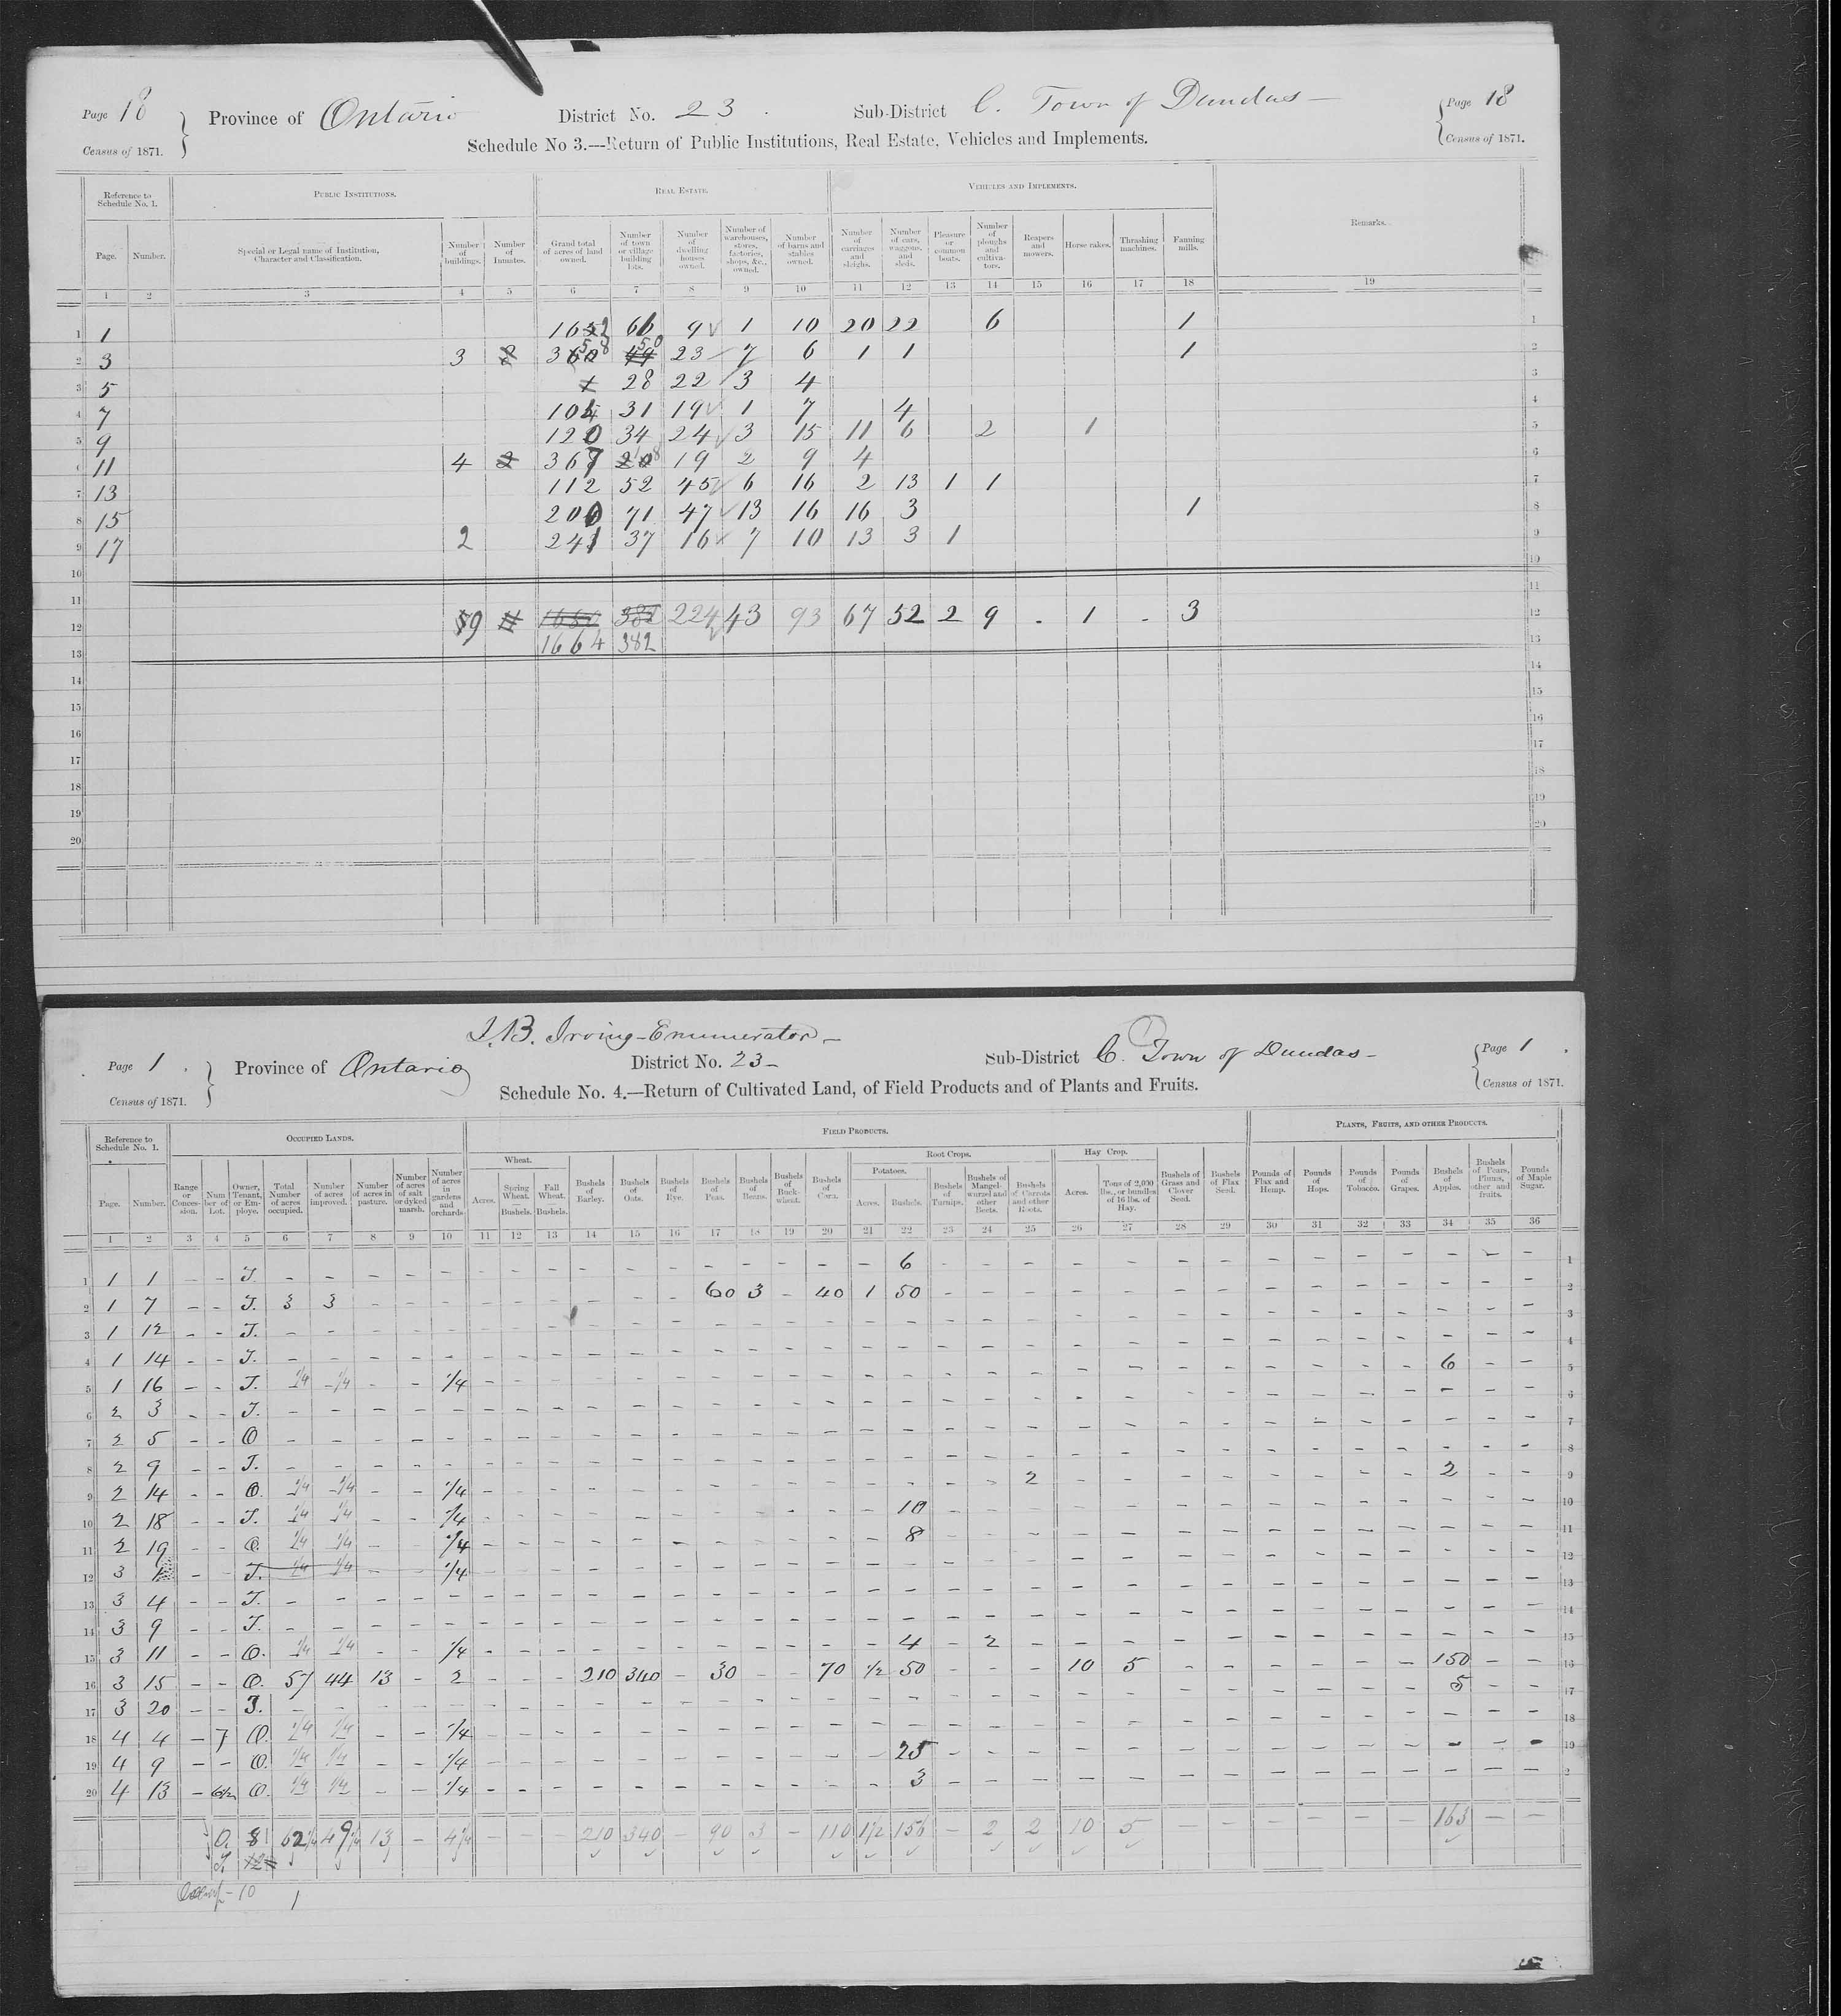 Title: Census of Canada, 1871 - Mikan Number: 142105 - Microform: c-9925